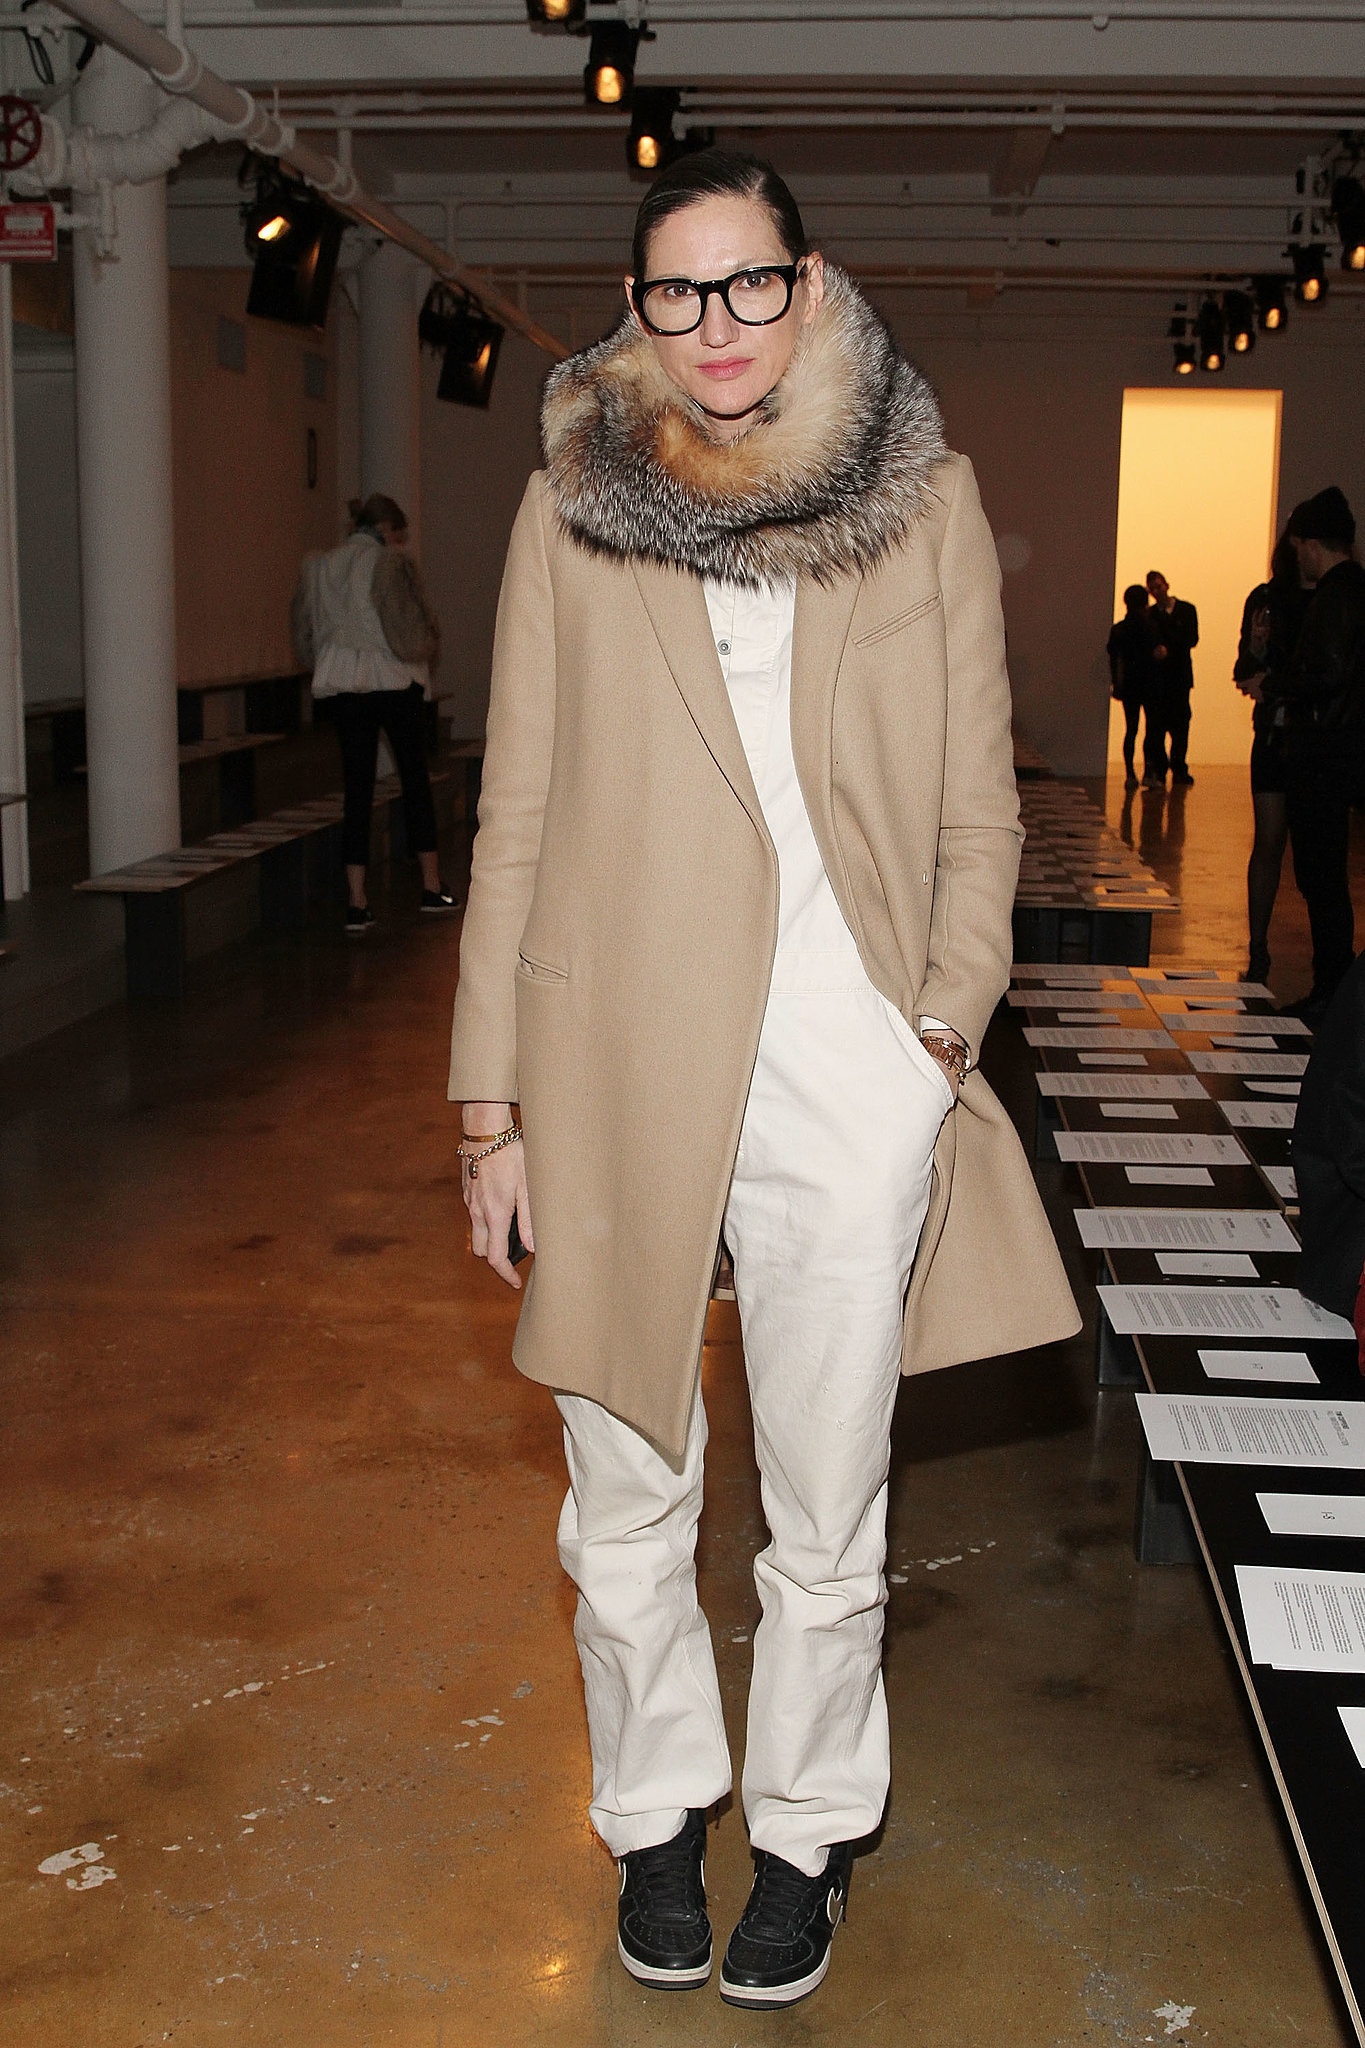 Even as a queen of mixing pattern and color, Jenna can still retreat to the simplicity of a good mix of white and tan.